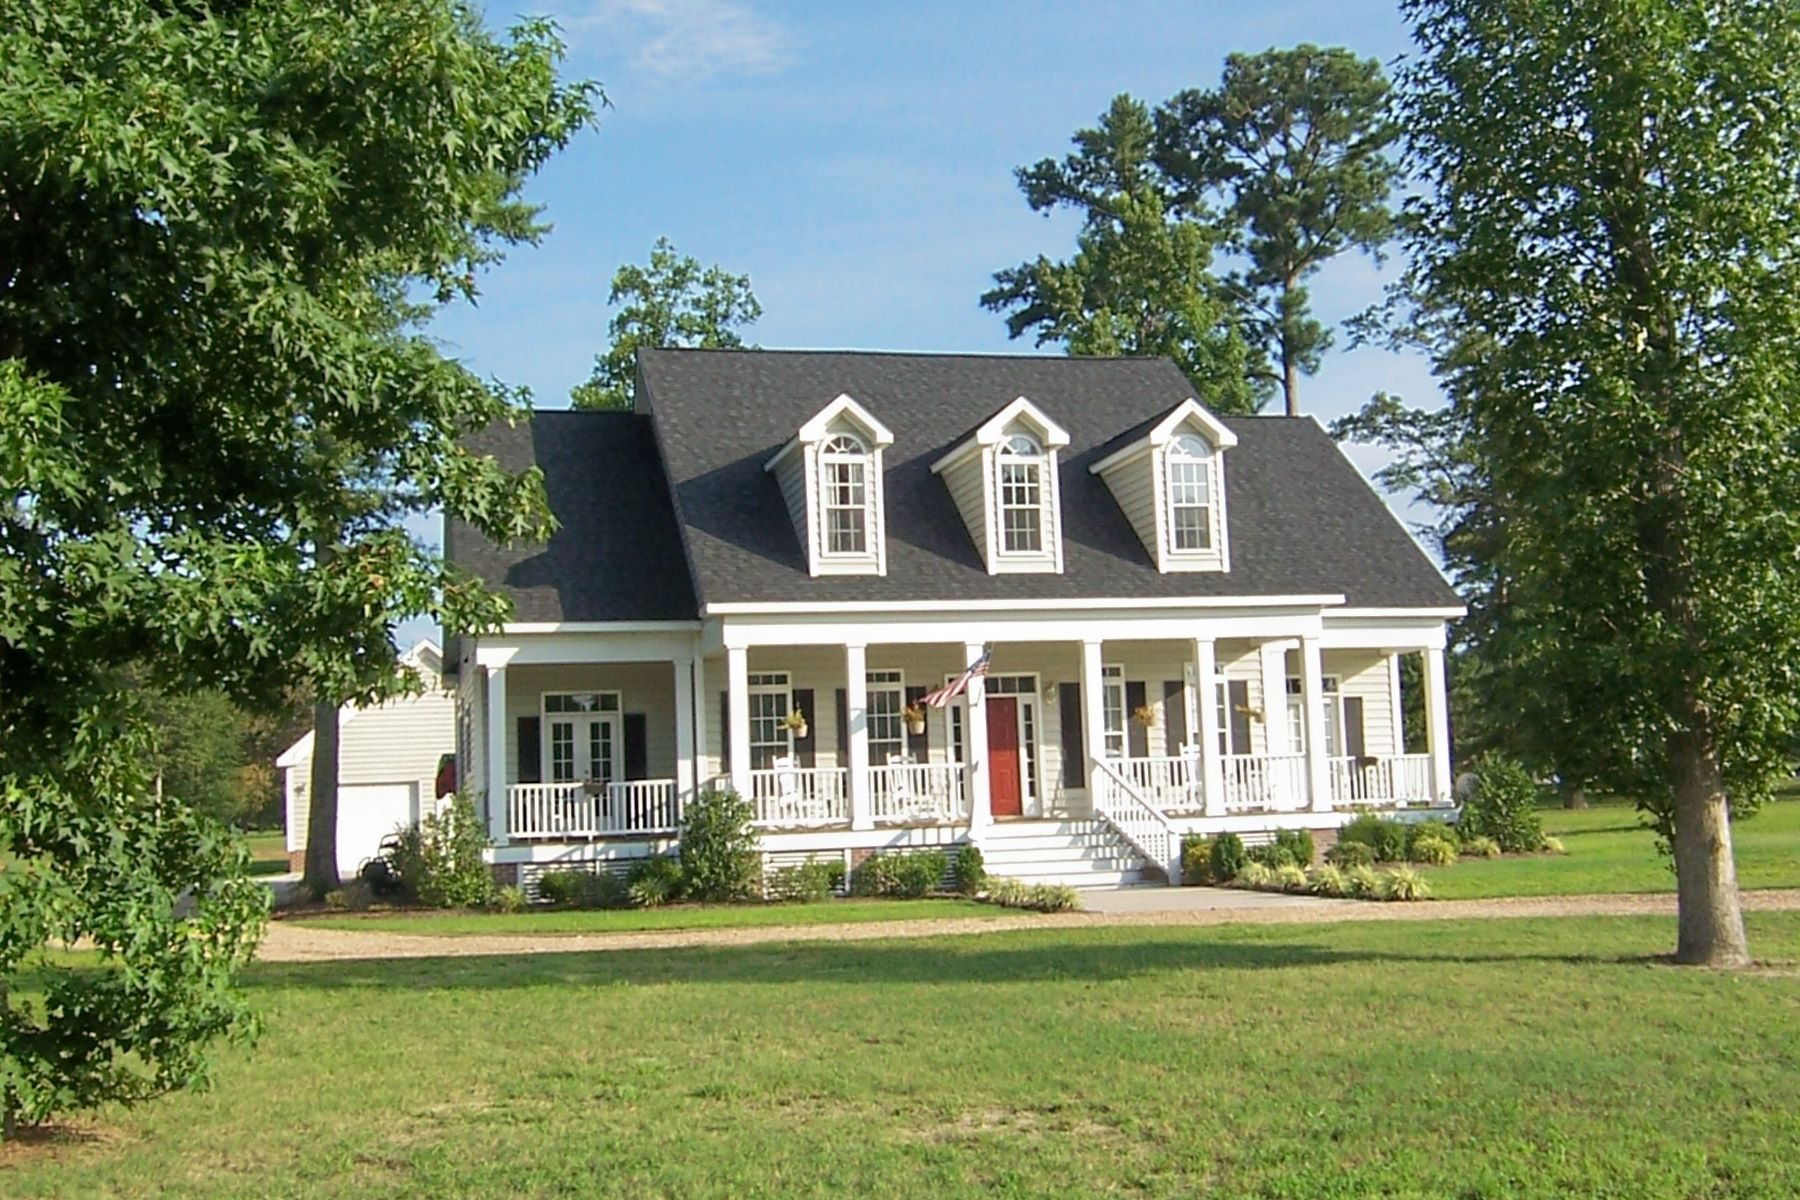 واحد منزل الأسرة للـ Sale في TRADITIONAL SOUTHERN HOME 128 Mallard Cove Rd, Edenton, North Carolina, 27932 United States